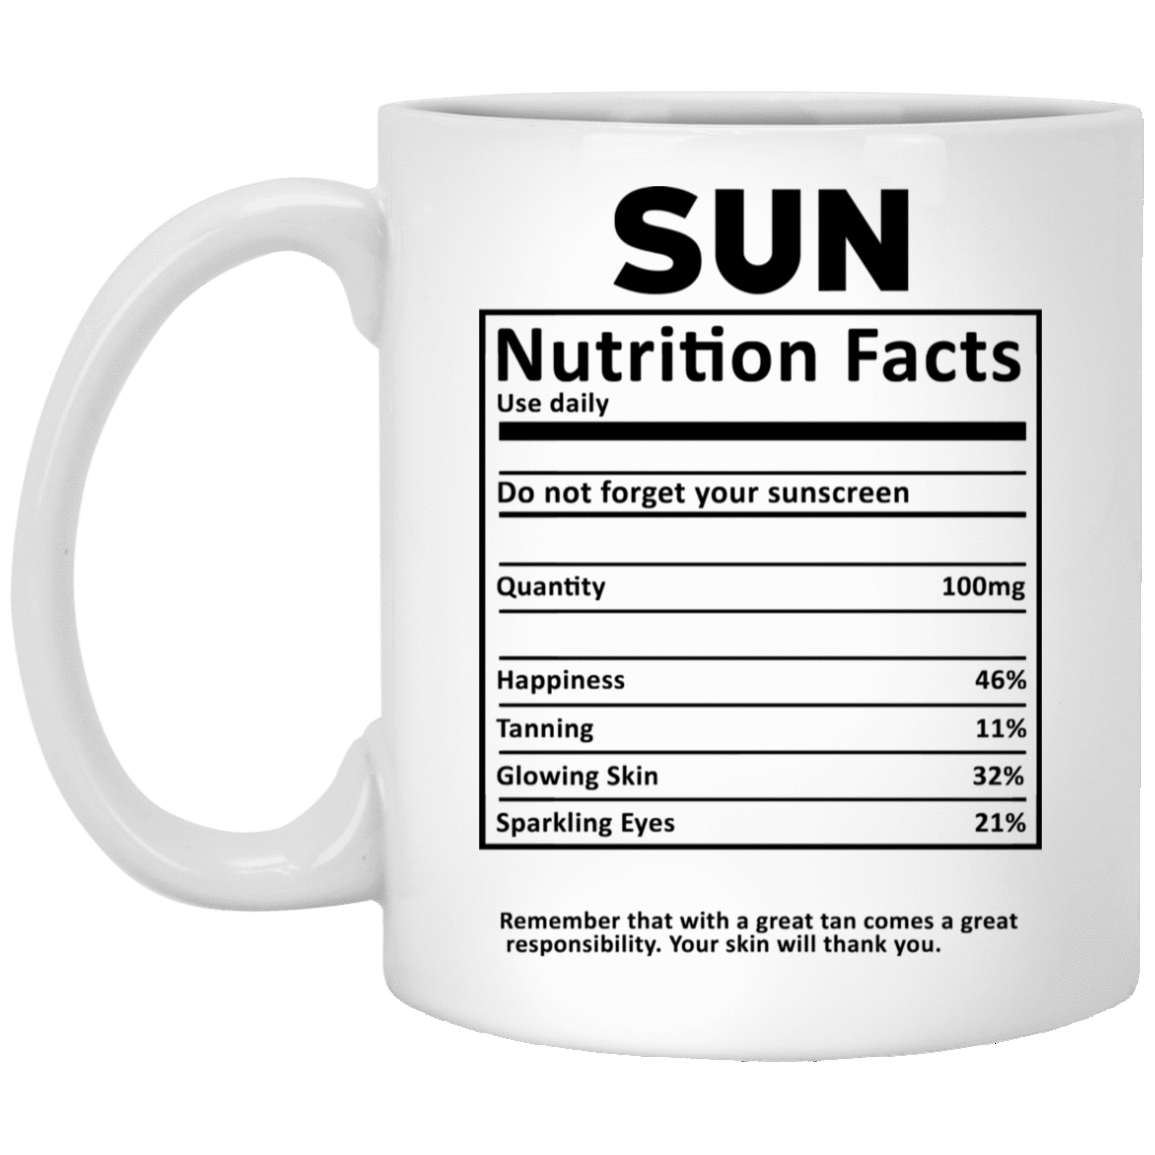 Sun Nutrition Facts Mug 1005-9786-73180824-47417 - Tee Ript